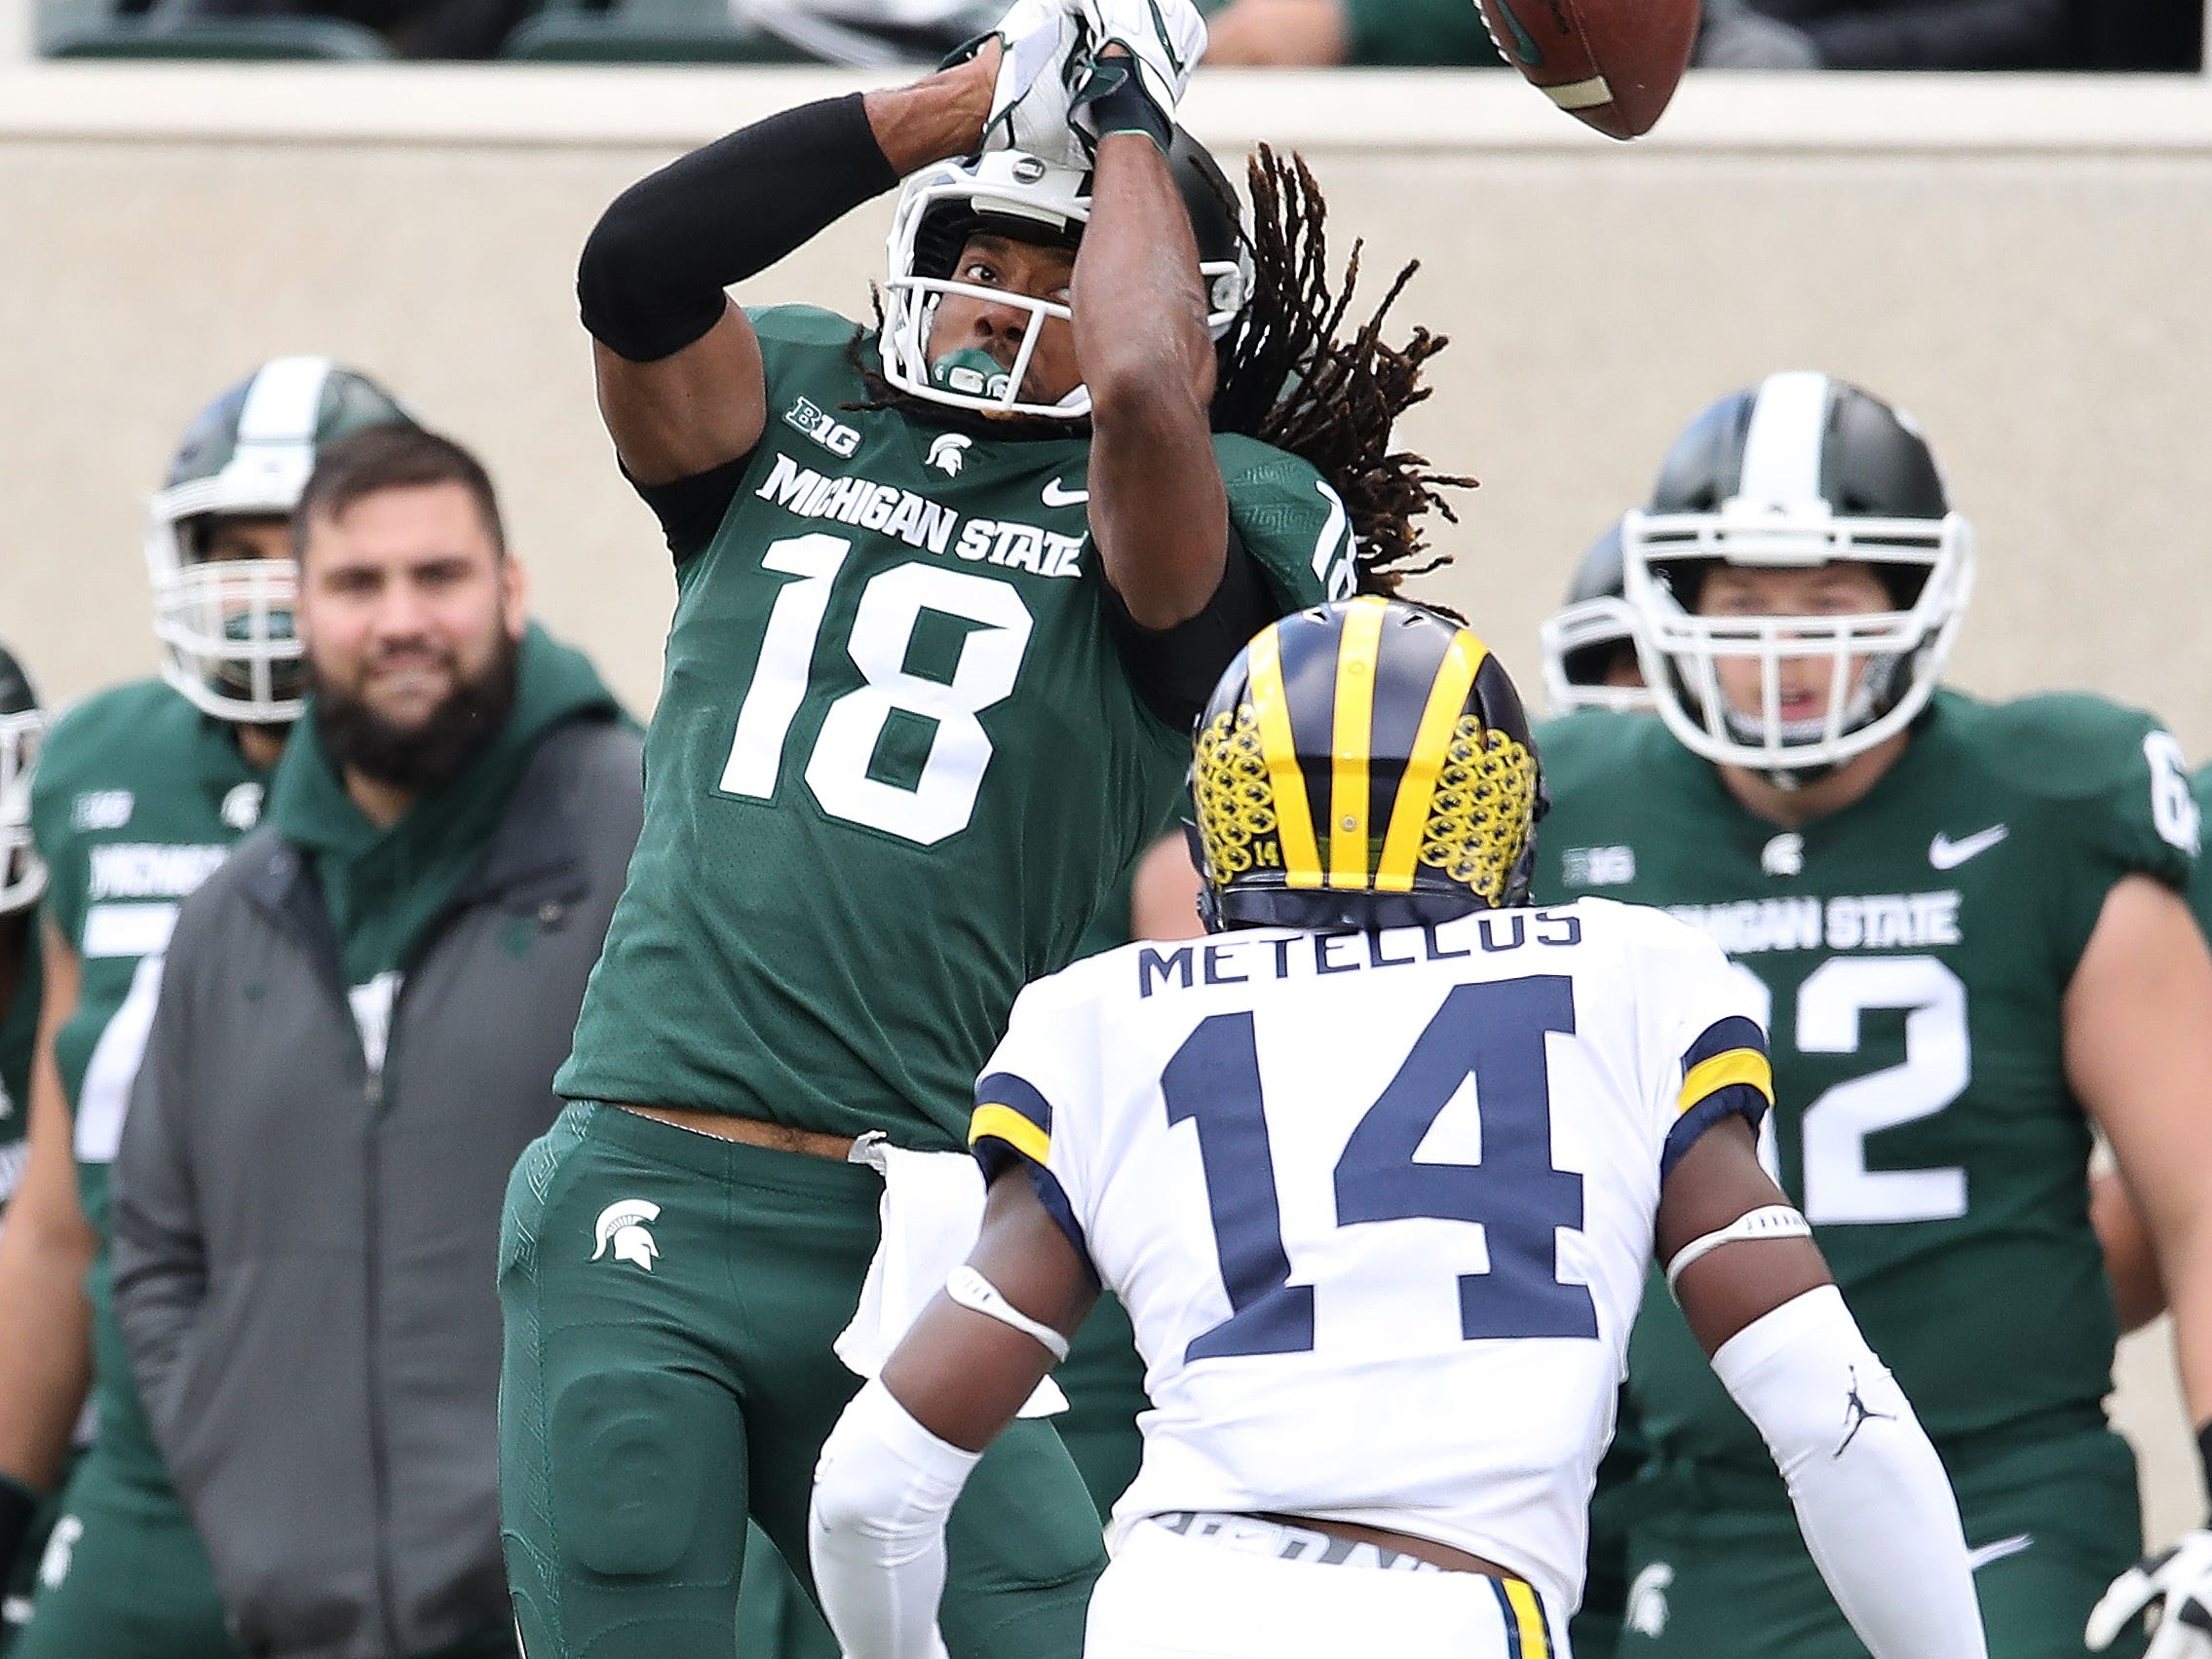 1052610164.jpg EAST LANSING, MI - OCTOBER 20: Felton Davis III #18 of the Michigan State Spartans can't make a first quarter catch next to Josh Metellus #14 of the Michigan Wolverines at Spartan Stadium on October 20, 2018 in East Lansing, Michigan. (Photo by Gregory Shamus/Getty Images)